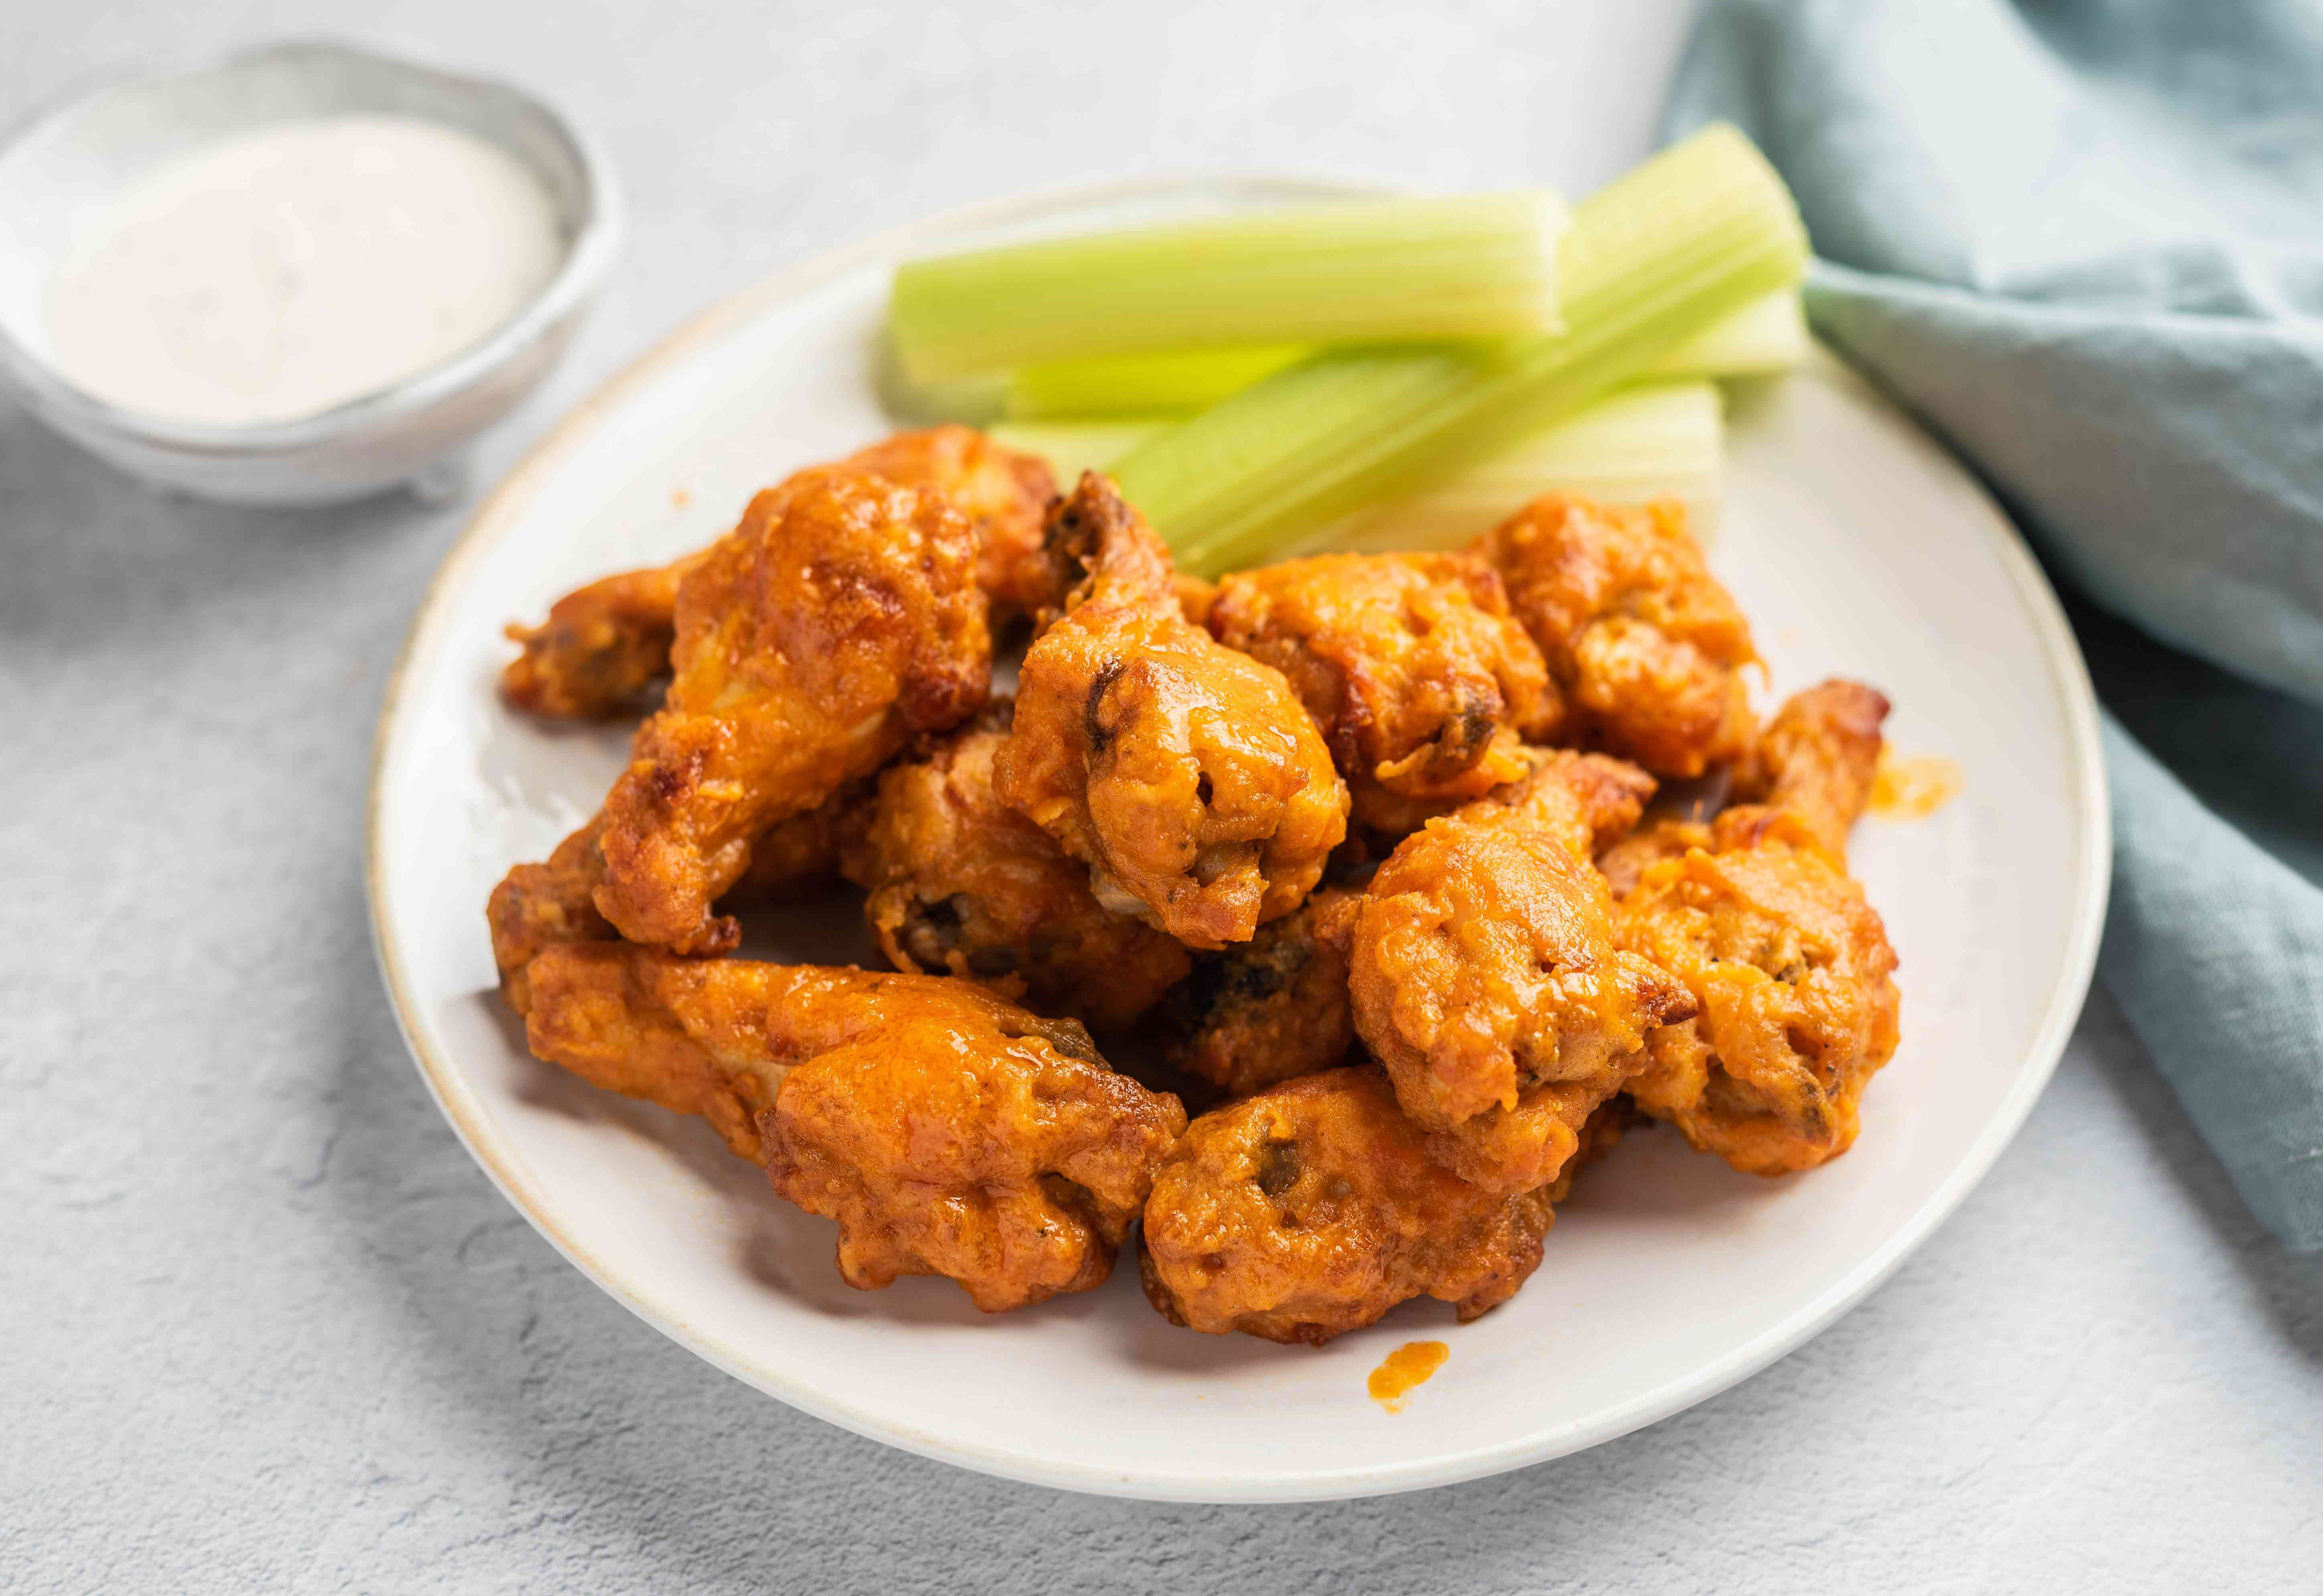 baked drumettes and wings